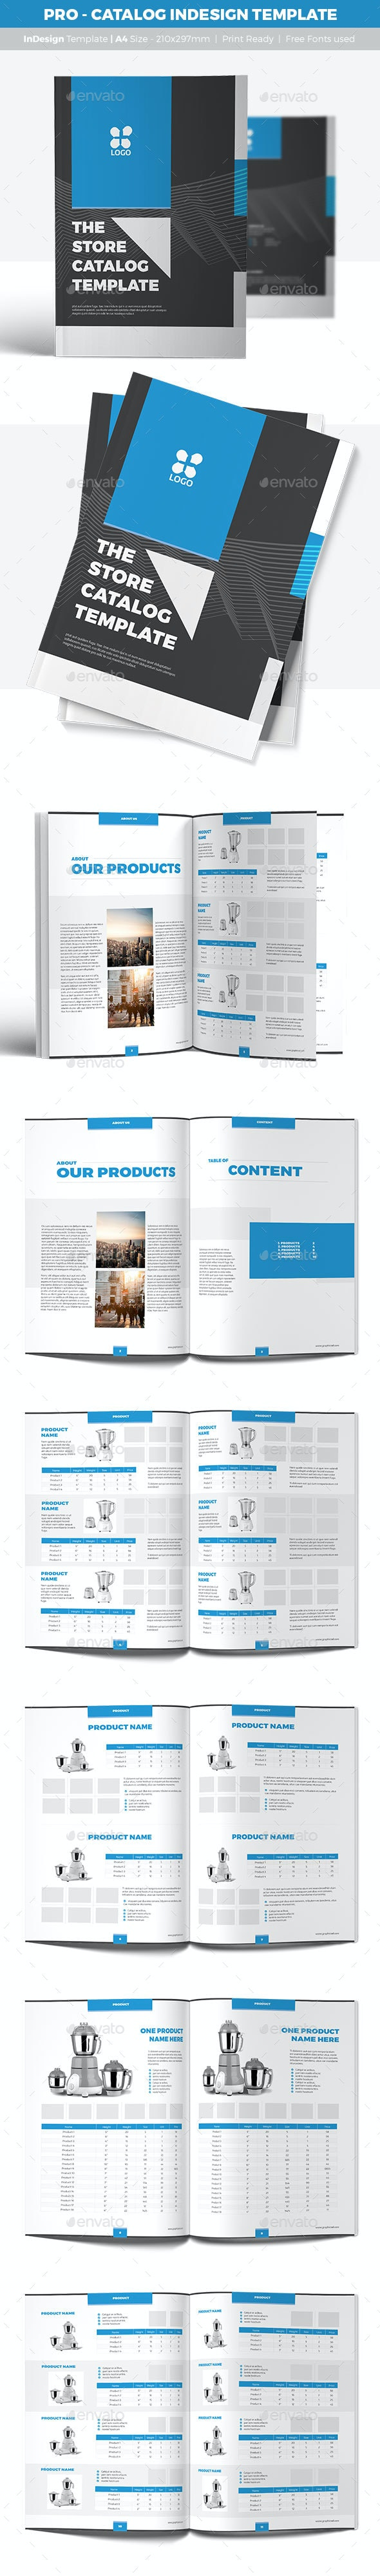 PRO - Catalog InDesign Template - Catalogs Brochures